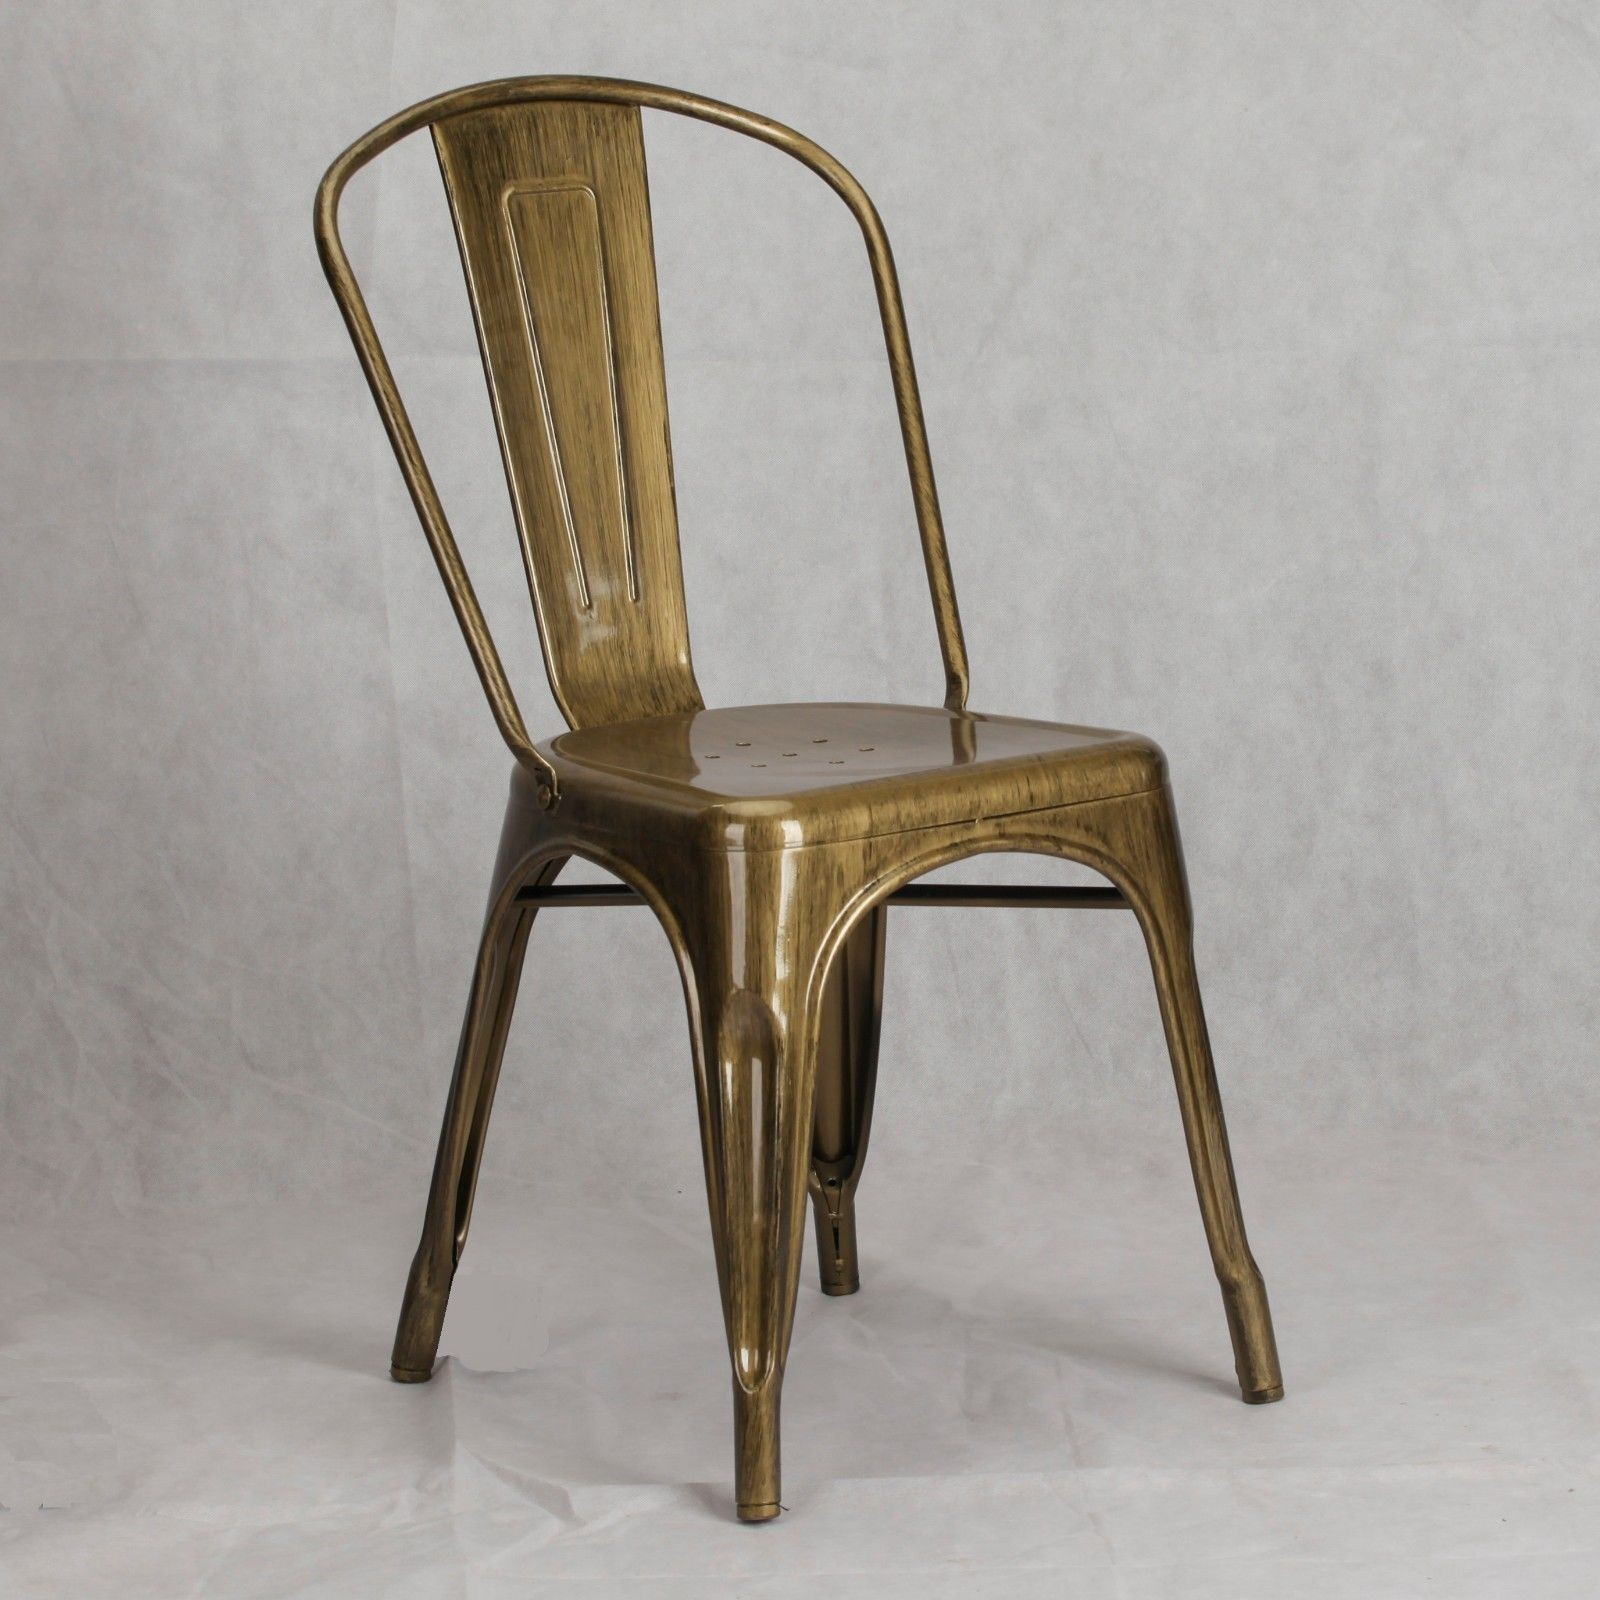 steel chair gold with arm table vintage tolix style metal brass finish dining